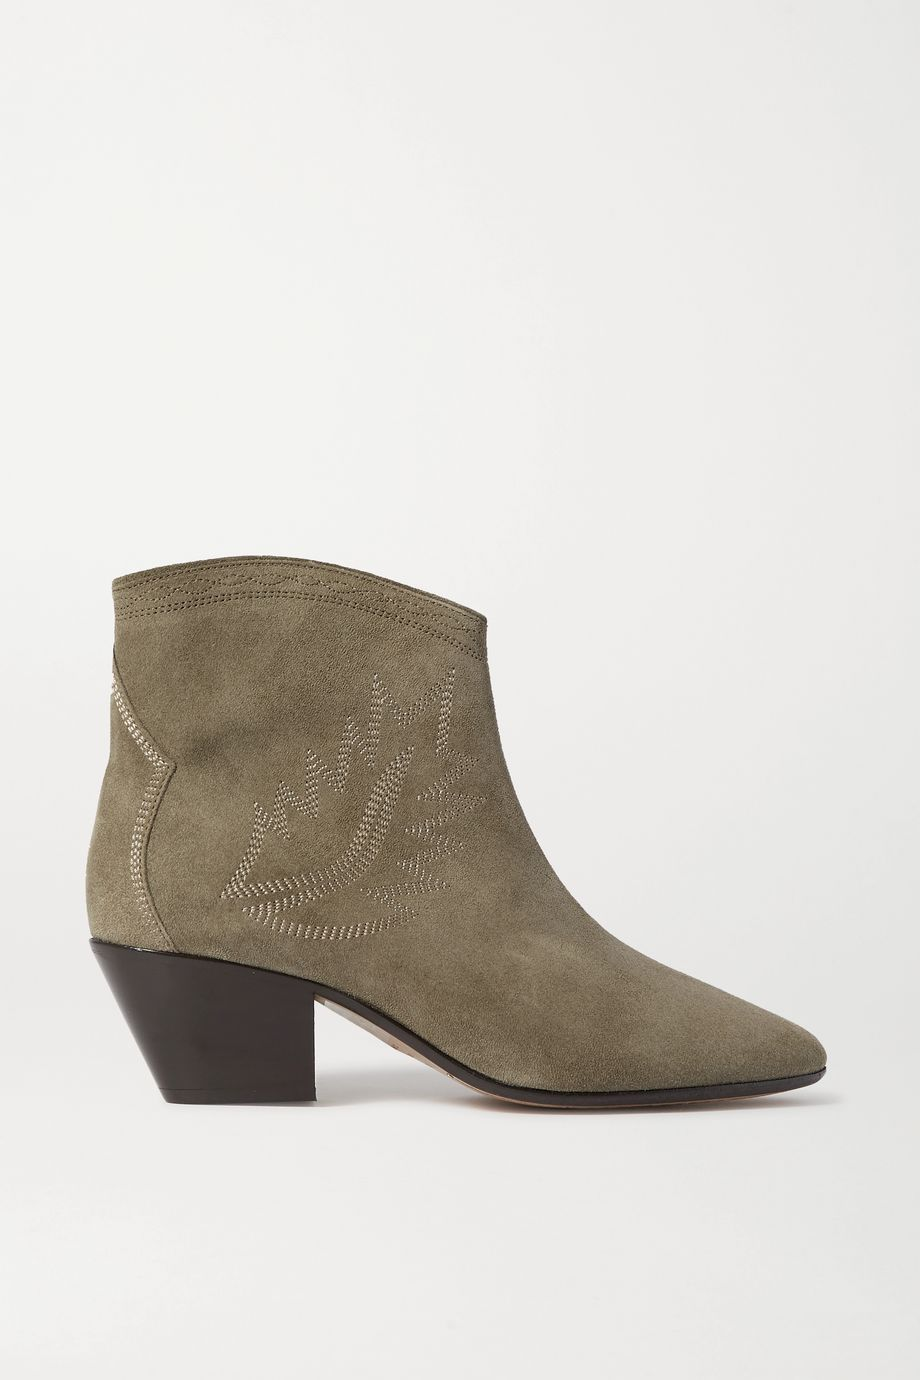 Isabel Marant Dacken embroidered suede ankle boots